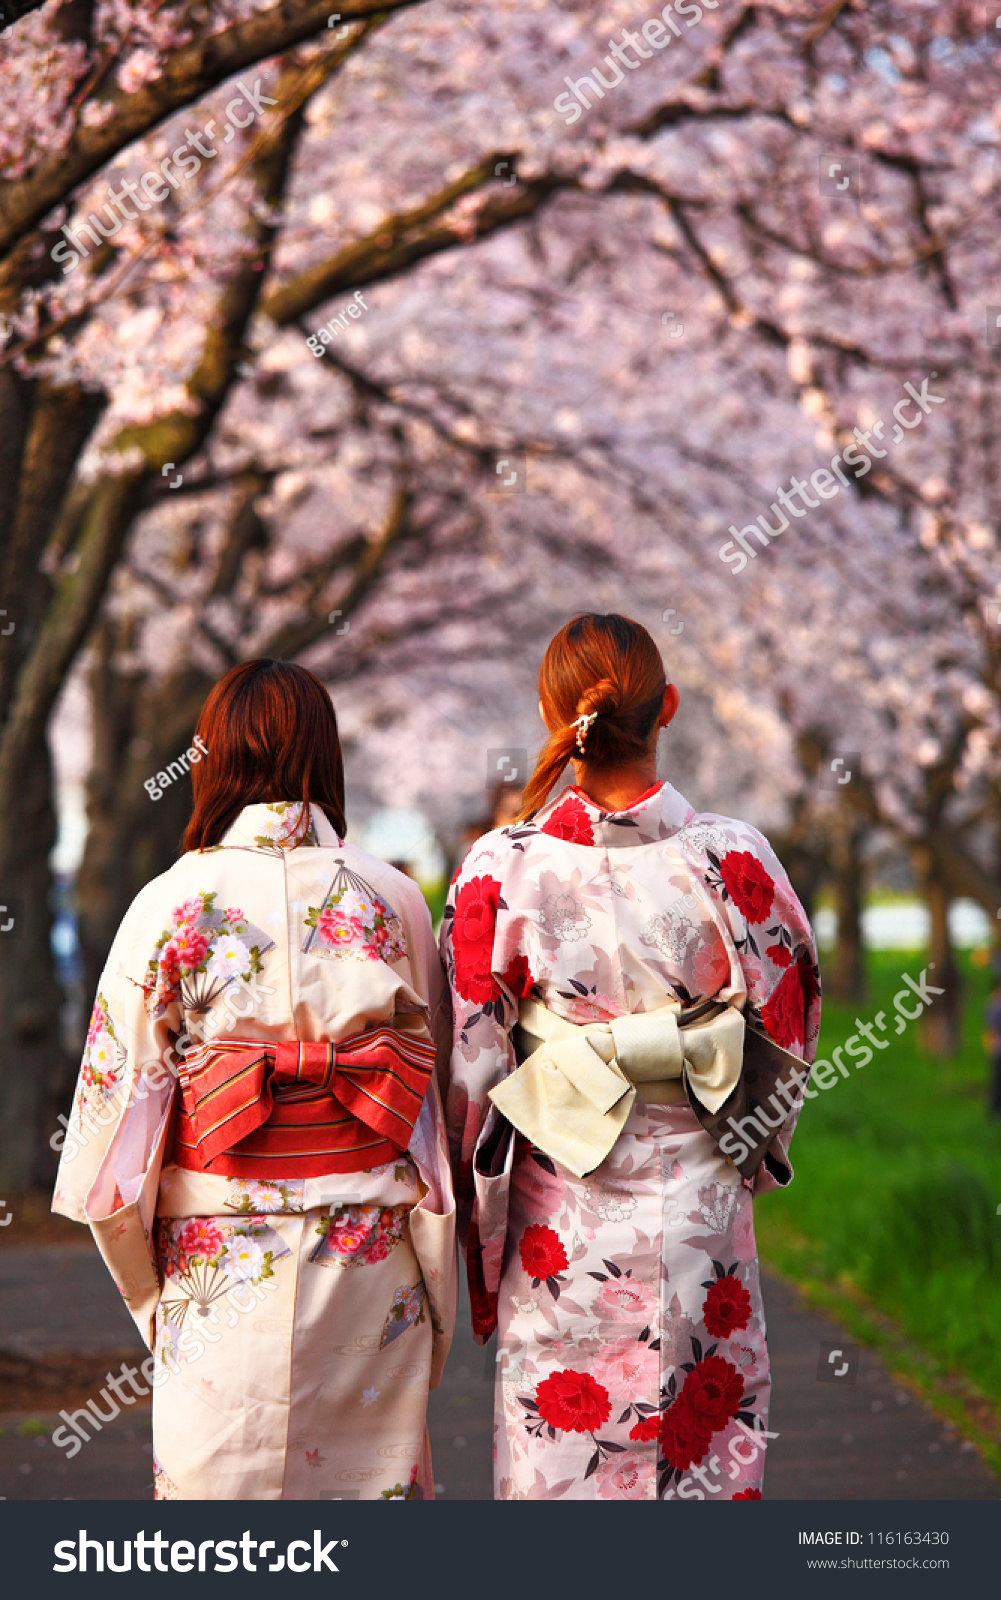 japanese girl wearing kimono - photo #39